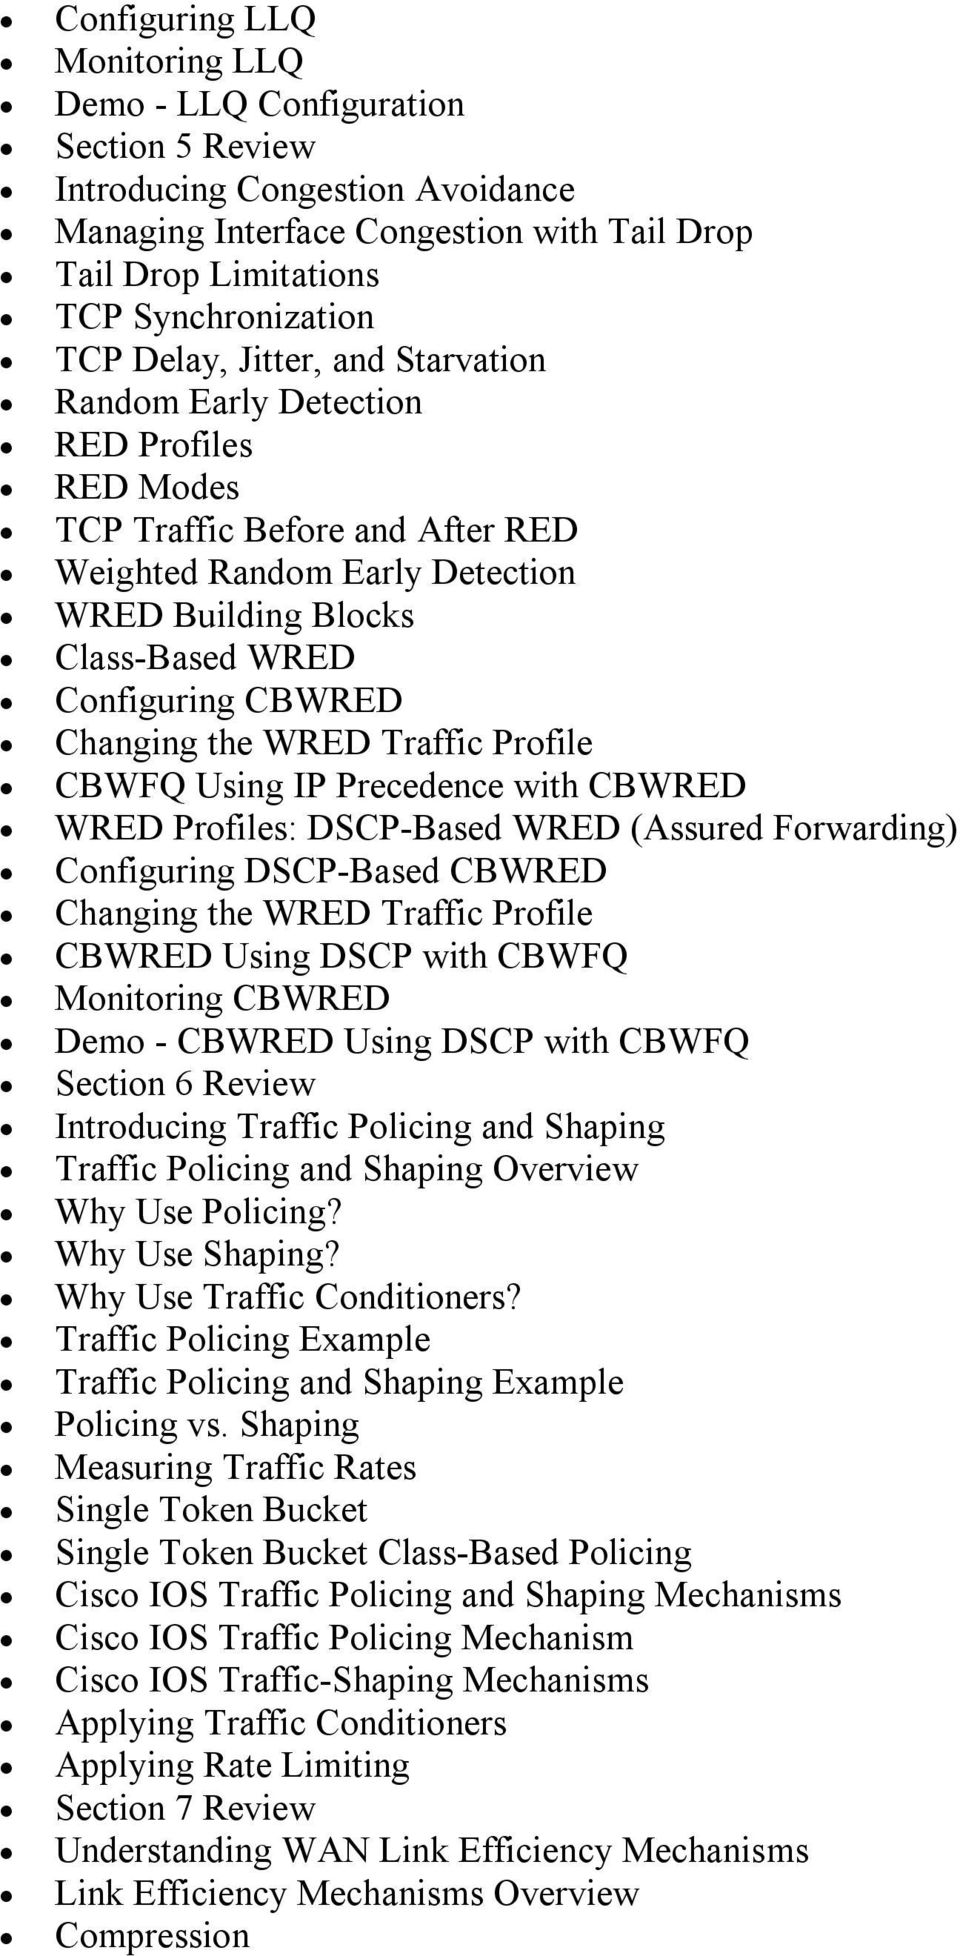 Changing the WRED Traffic Profile CBWFQ Using IP Precedence with CBWRED WRED Profiles: DSCP Based WRED (Assured Forwarding) Configuring DSCP Based CBWRED Changing the WRED Traffic Profile CBWRED